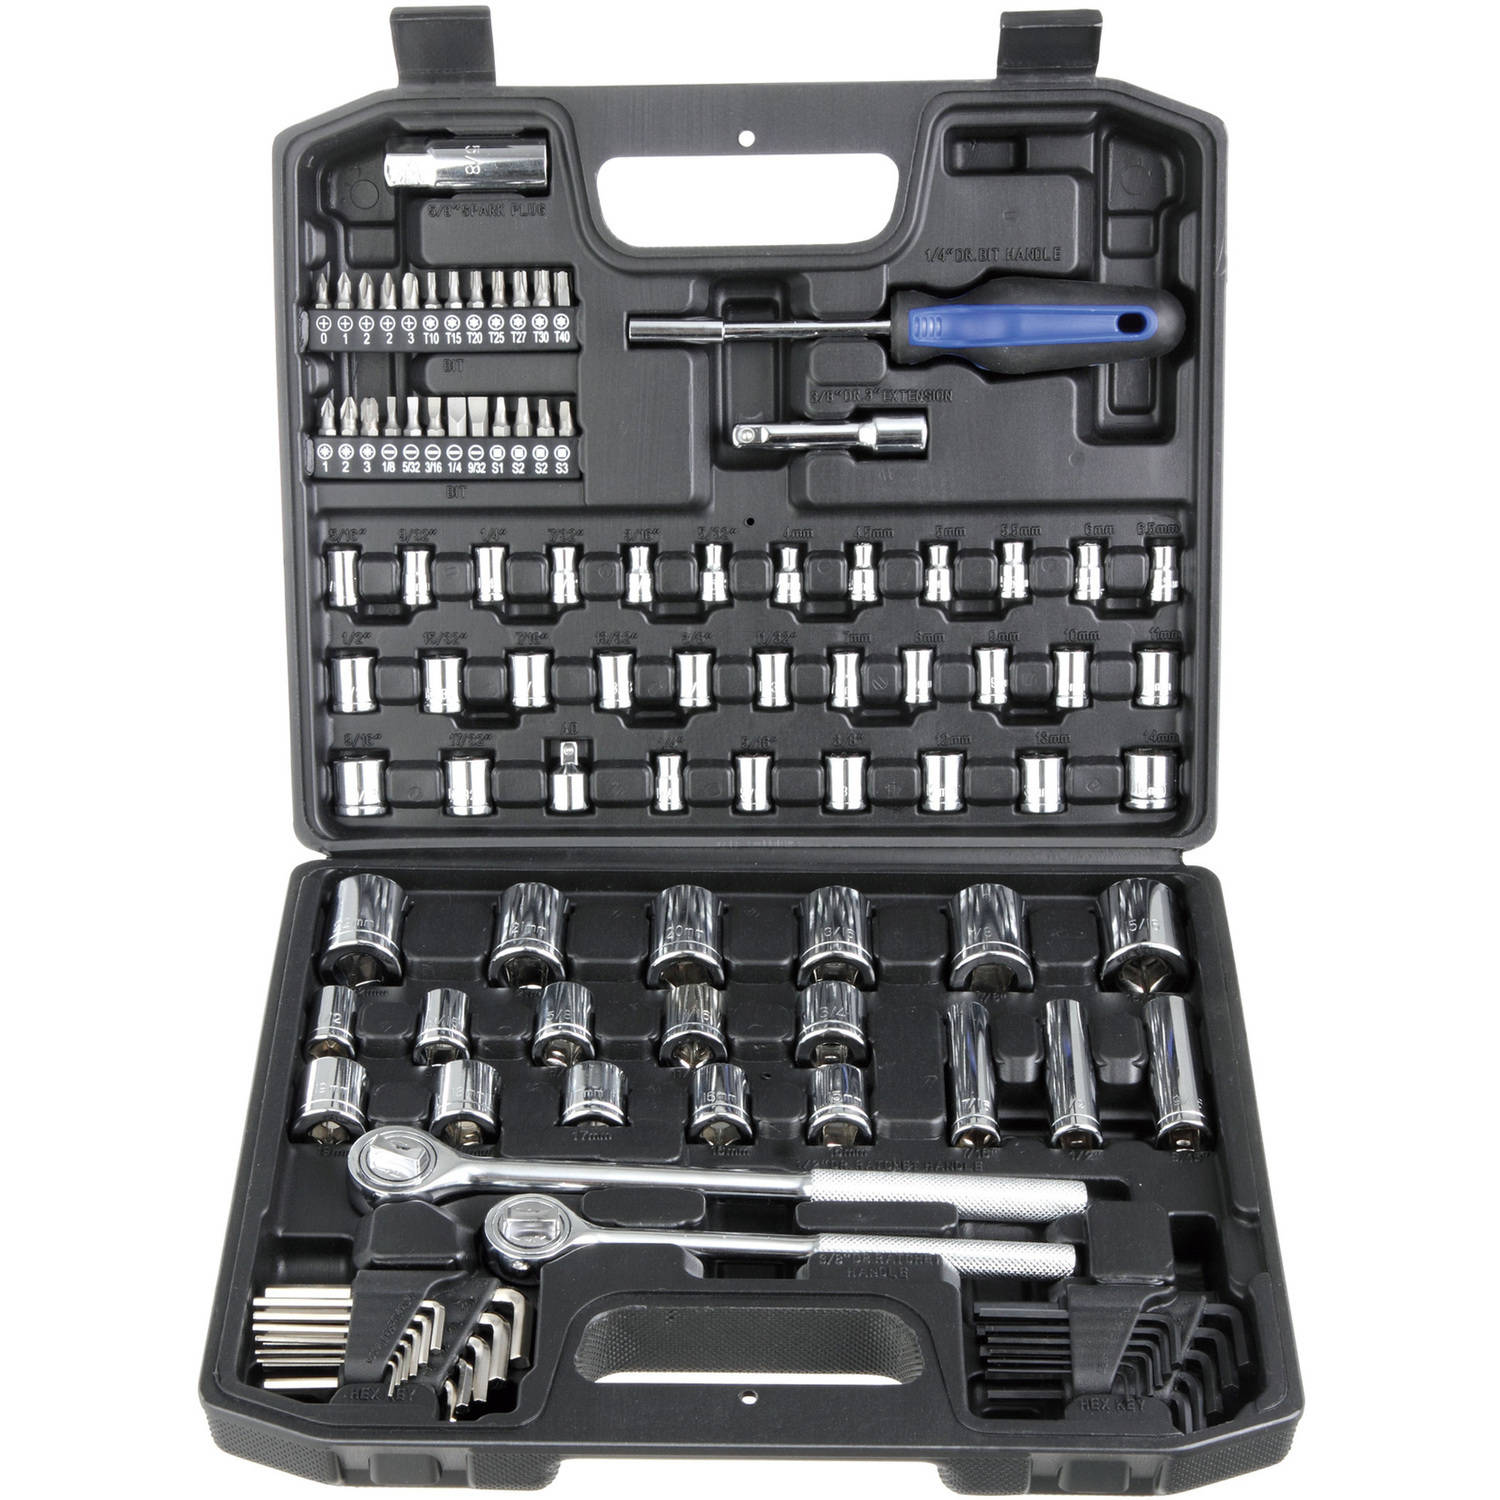 Hyper Tough 107-Piece 1/4, 3/8 And 1/2 Inch Drive Socket Set